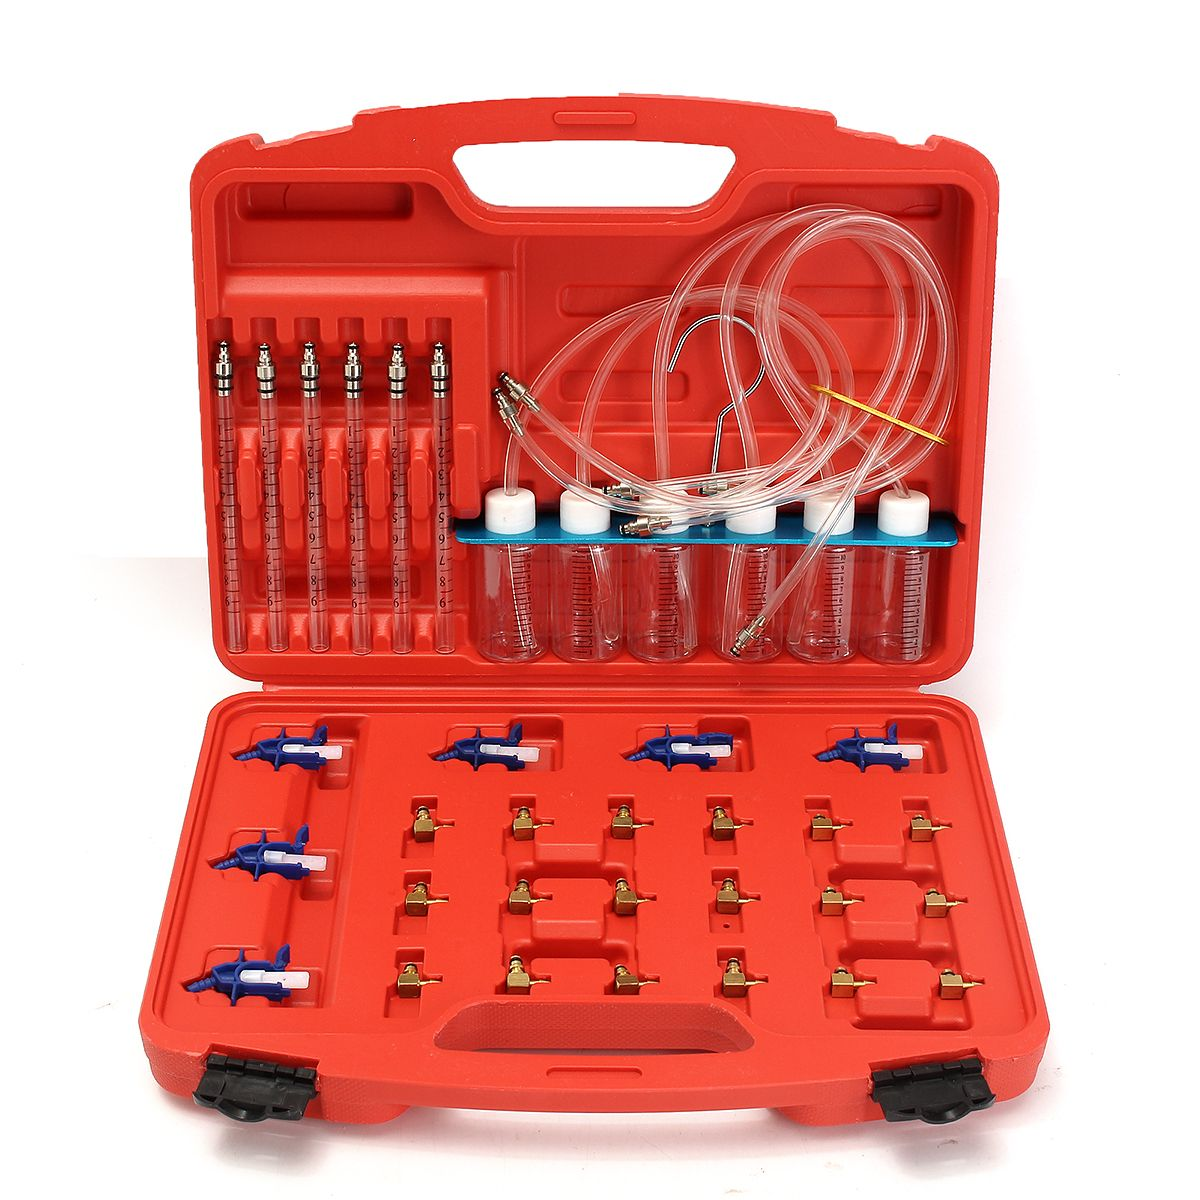 36Pcs Injector Flow Meter Adapter Test Kits For Common Rail for Diesel Fuel Tester Diagnosis Tool Set 6 injector tested together